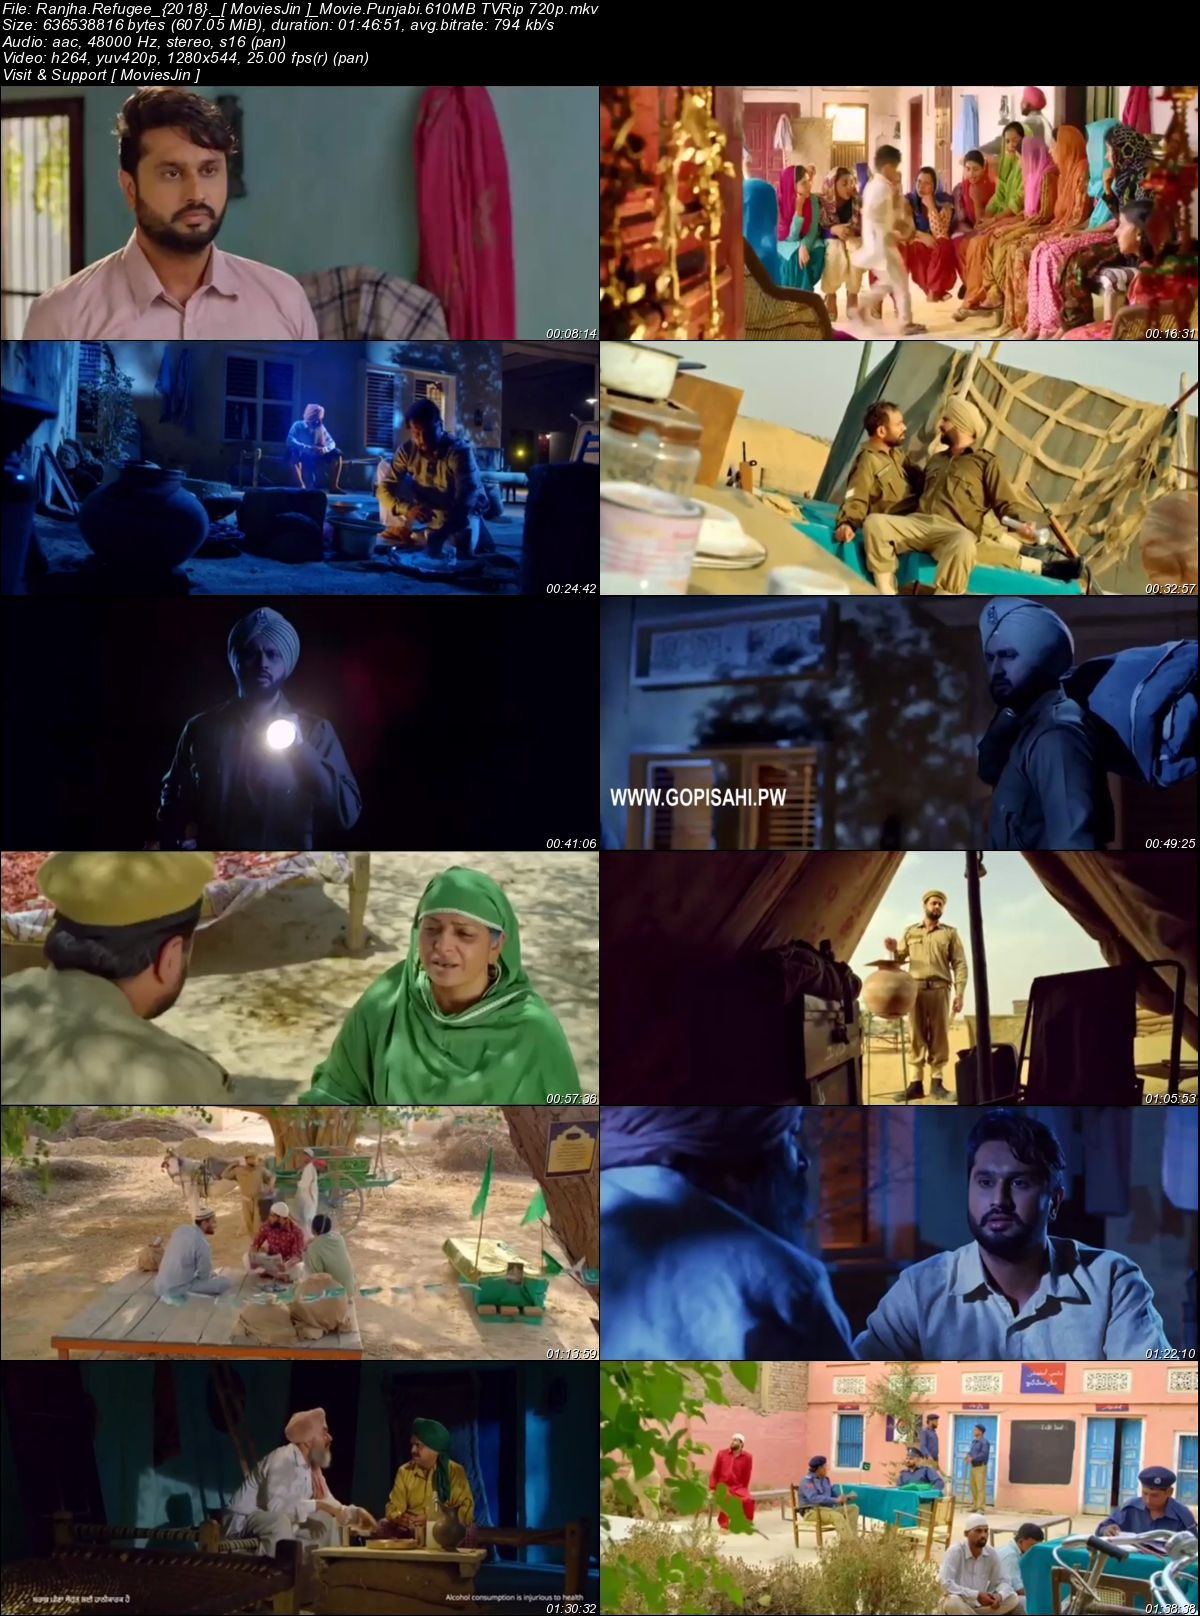 Watch Online Ranjha Refugee 2018 Full Movie Punjabi 600MB TVRip 720p Full Movie Download 300mbmovies